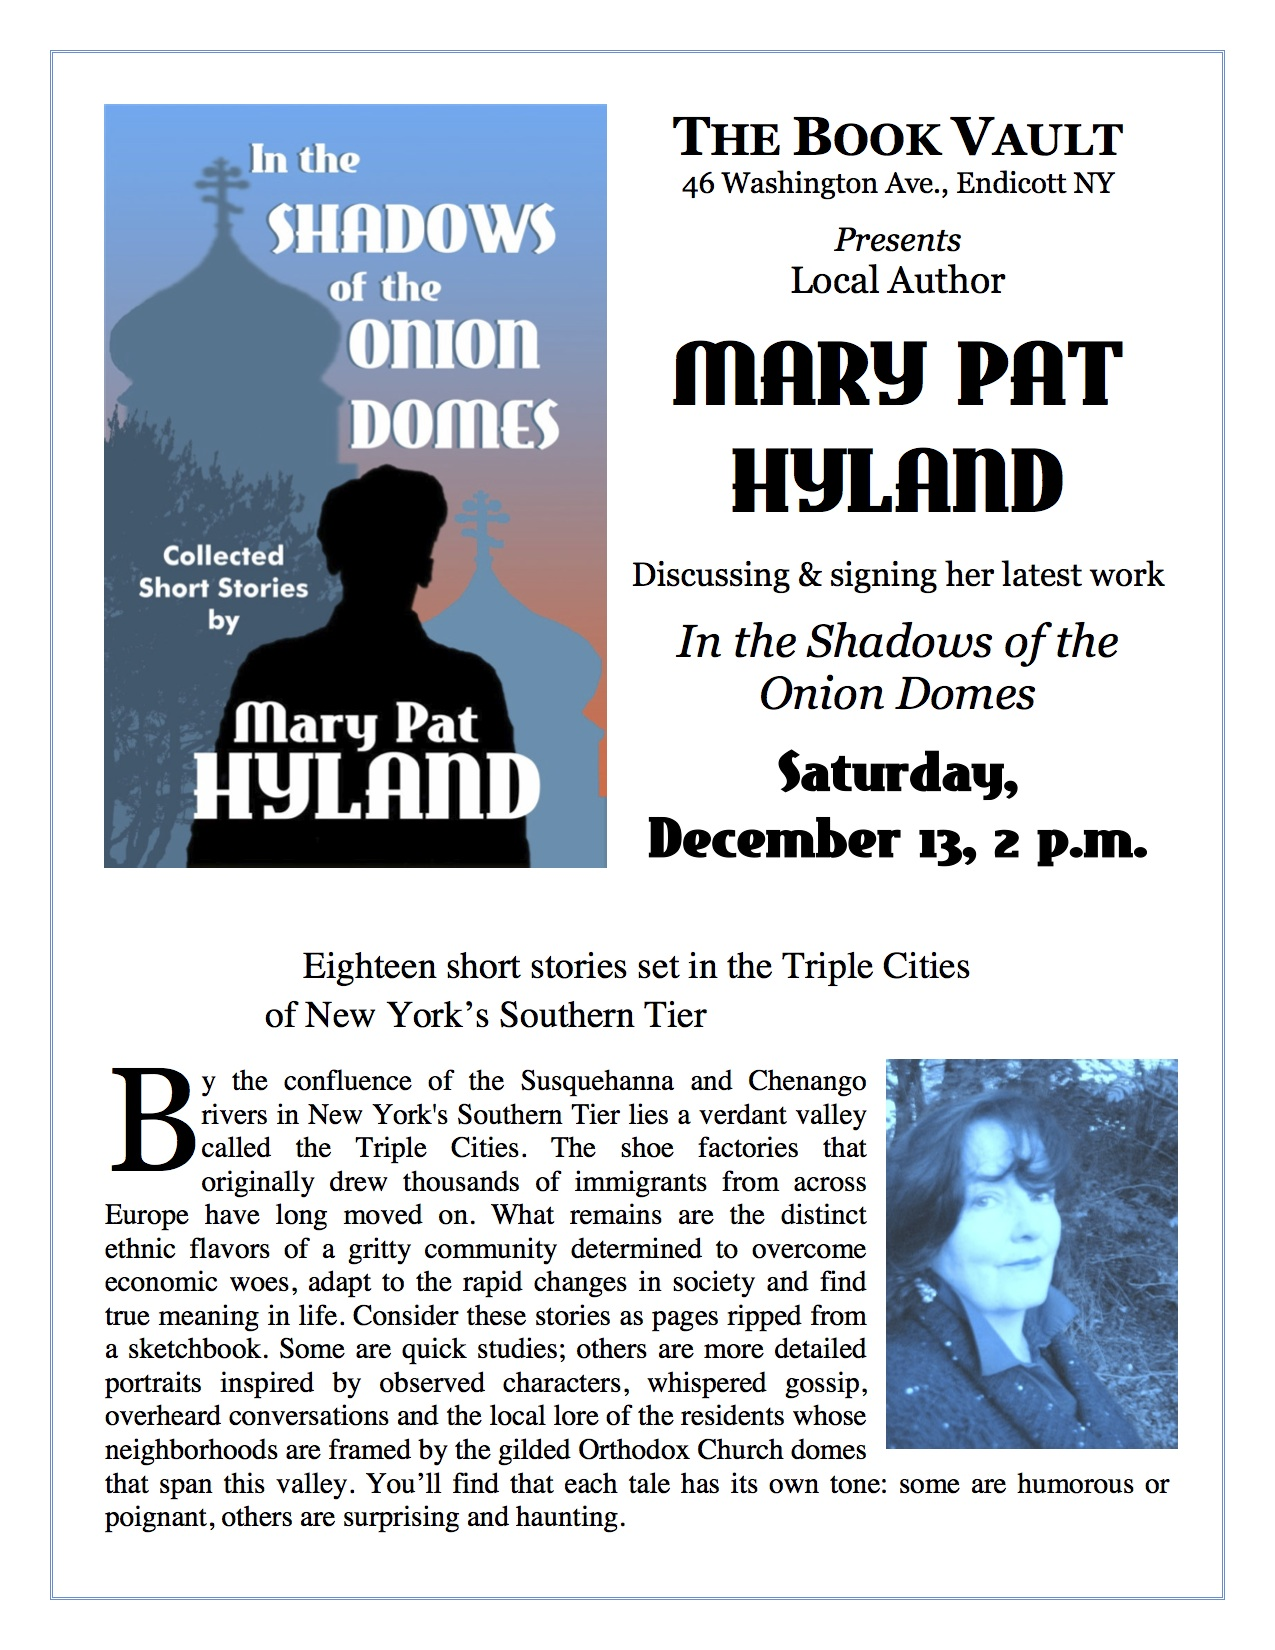 Book Event-Mary Pat Hyland-12:13:14